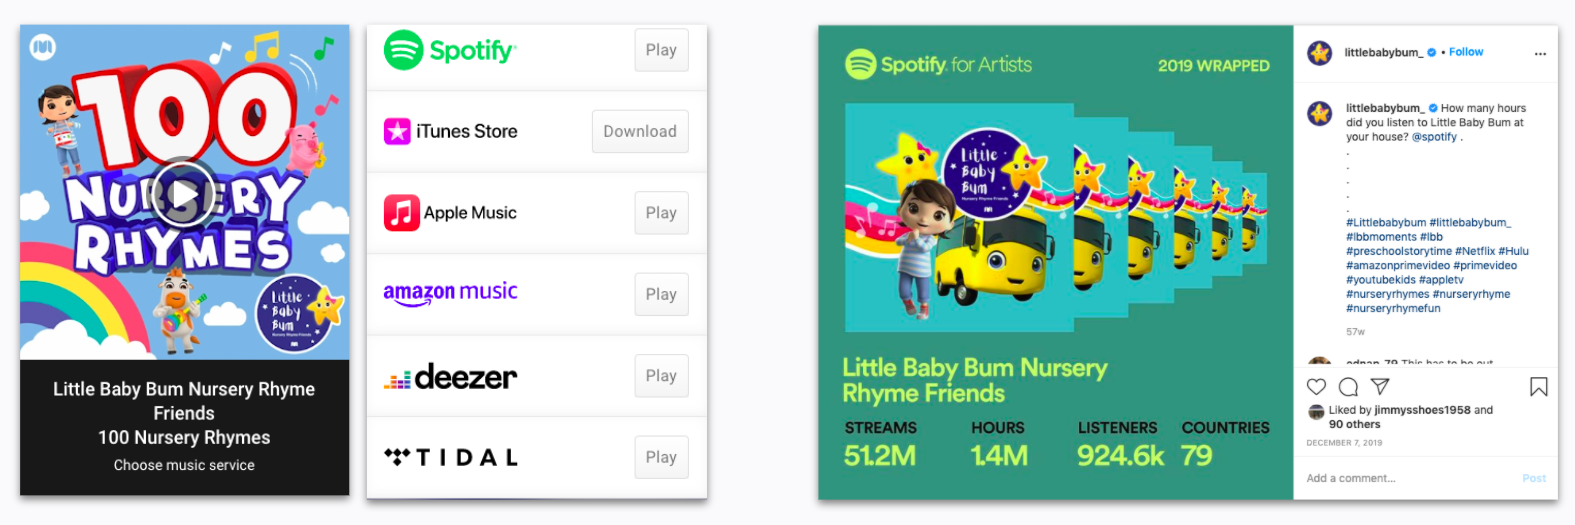 Little Baby Bum - Nursery Rhymes and Music - Spotify